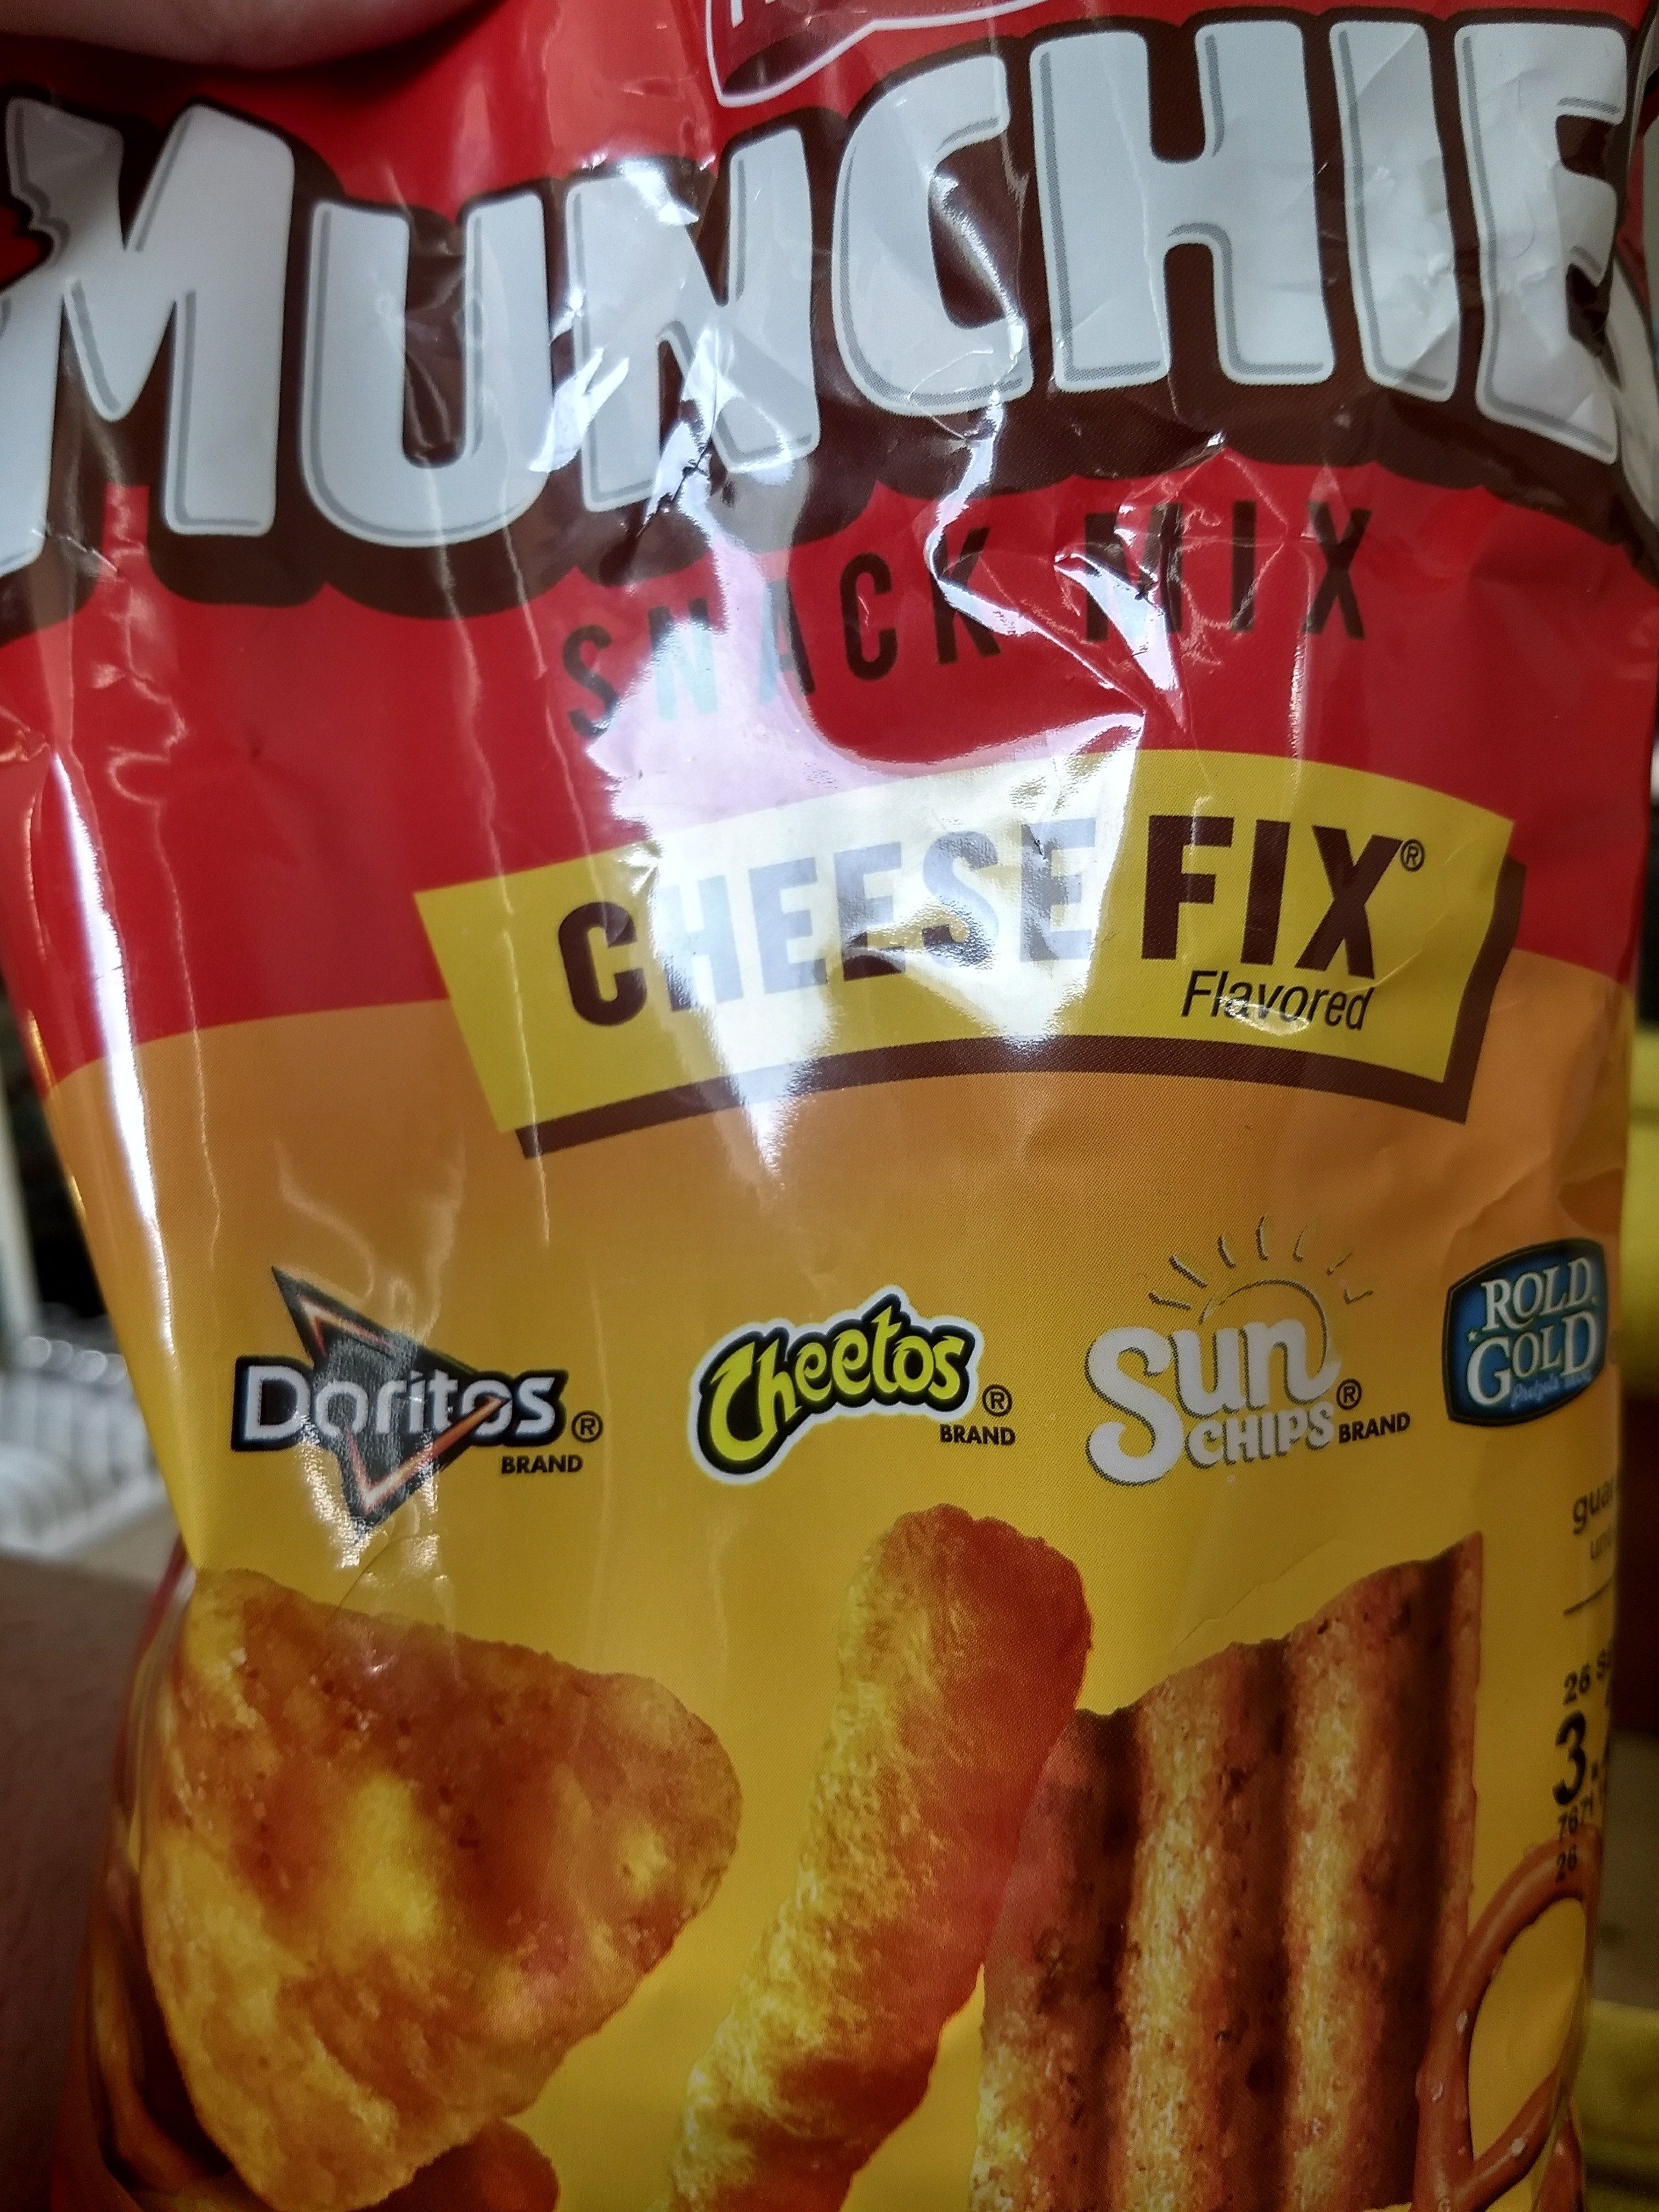 Munchies Cheese Fix Snack Mix 8 Ounce Plastic Bag - Product - en